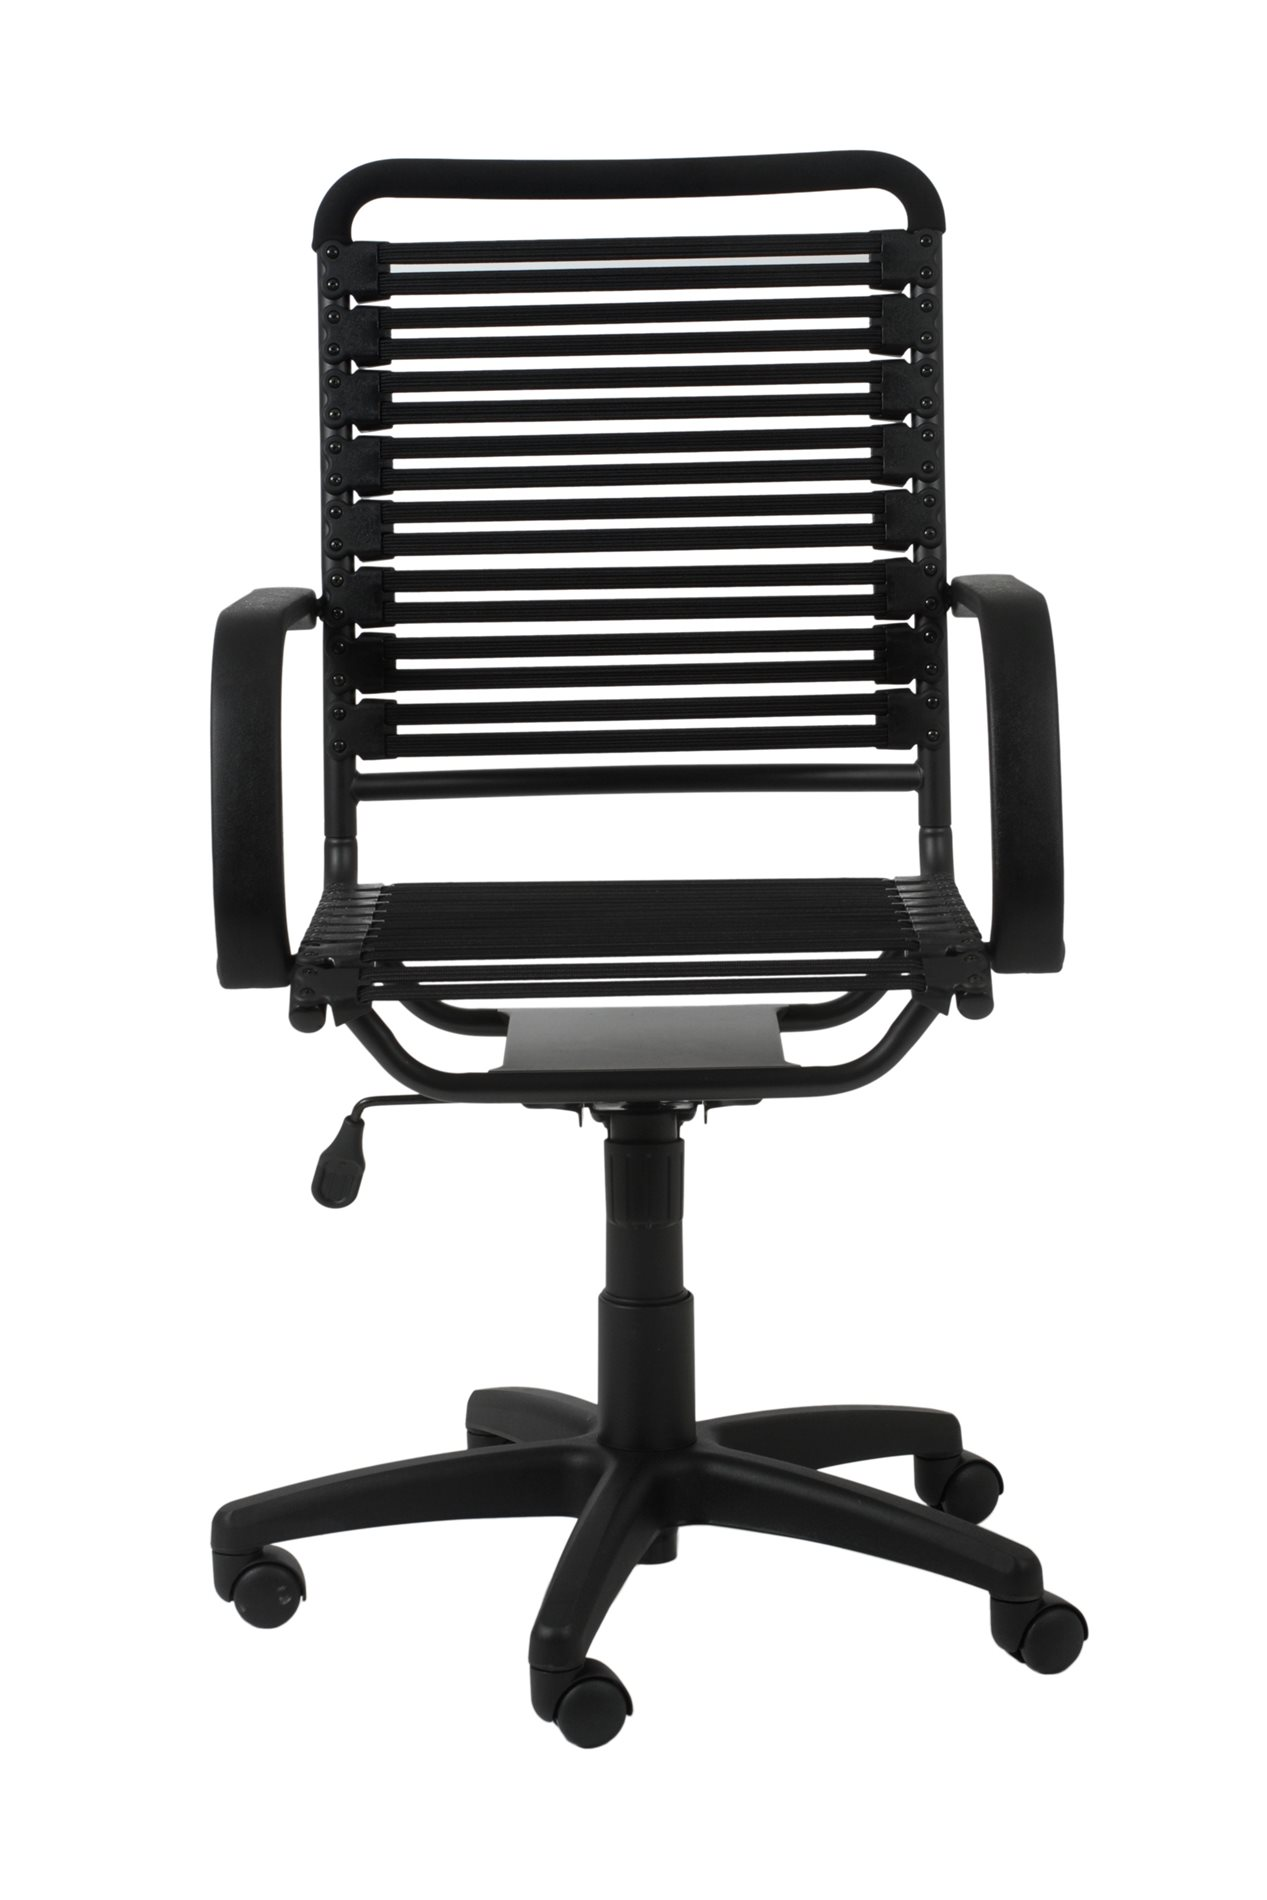 Bungie Office Chair Euro Style 02570blk Bungie Flat High Back Office Chair Ers